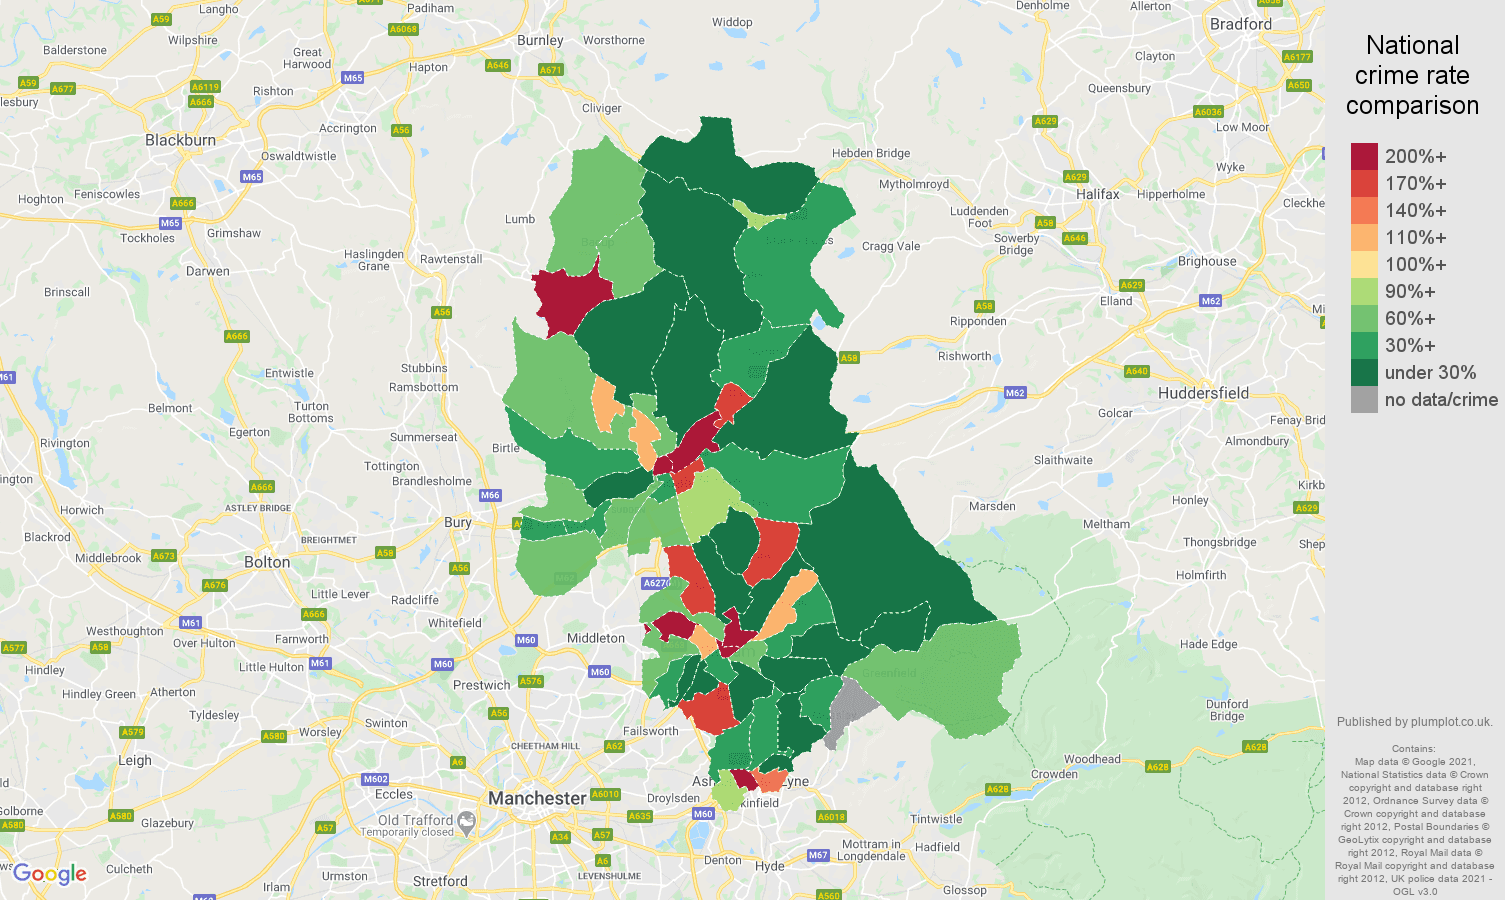 Oldham shoplifting crime rate comparison map